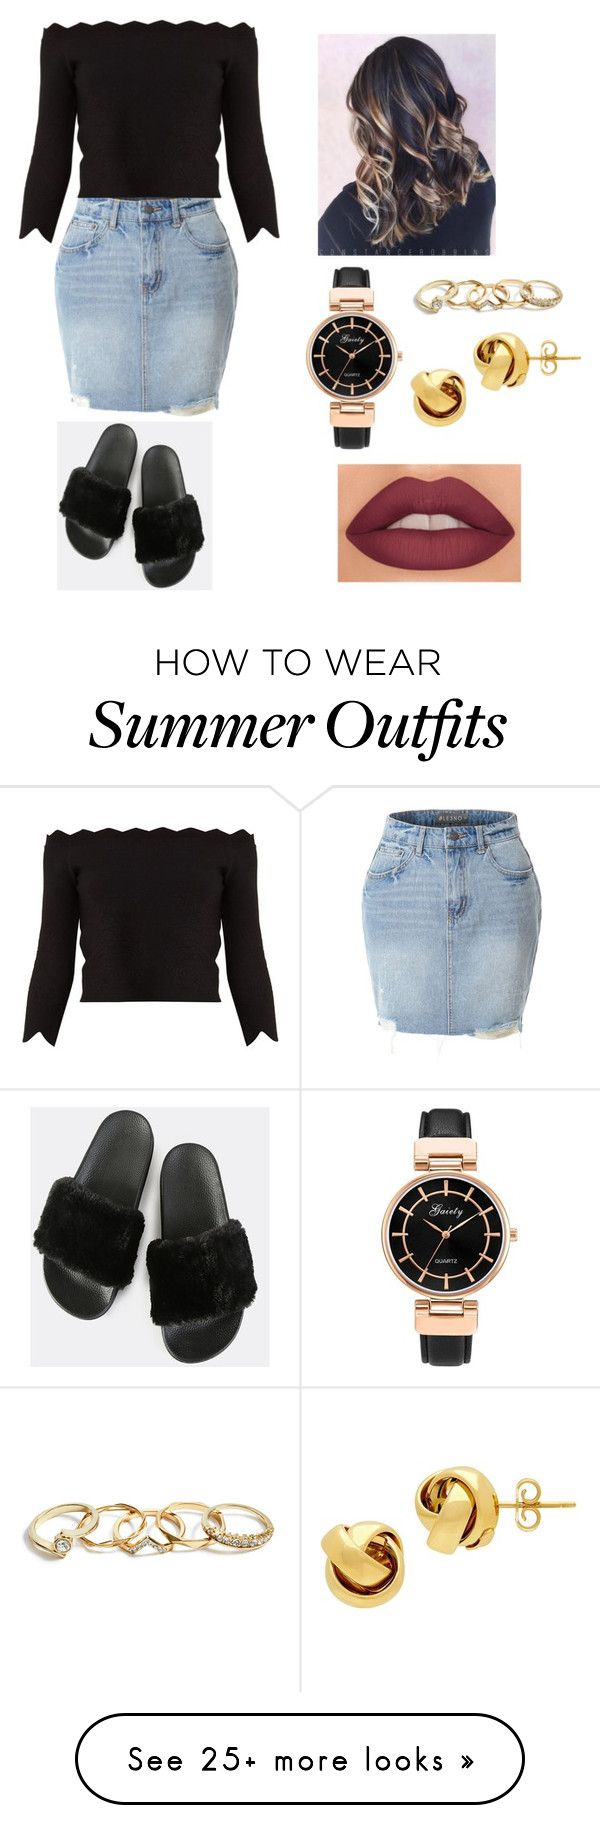 """""""Cute summer outfit"""" by jadedoming on Polyvore featuring LE3NO, Alexander McQueen, GUESS and Lord & Taylor"""